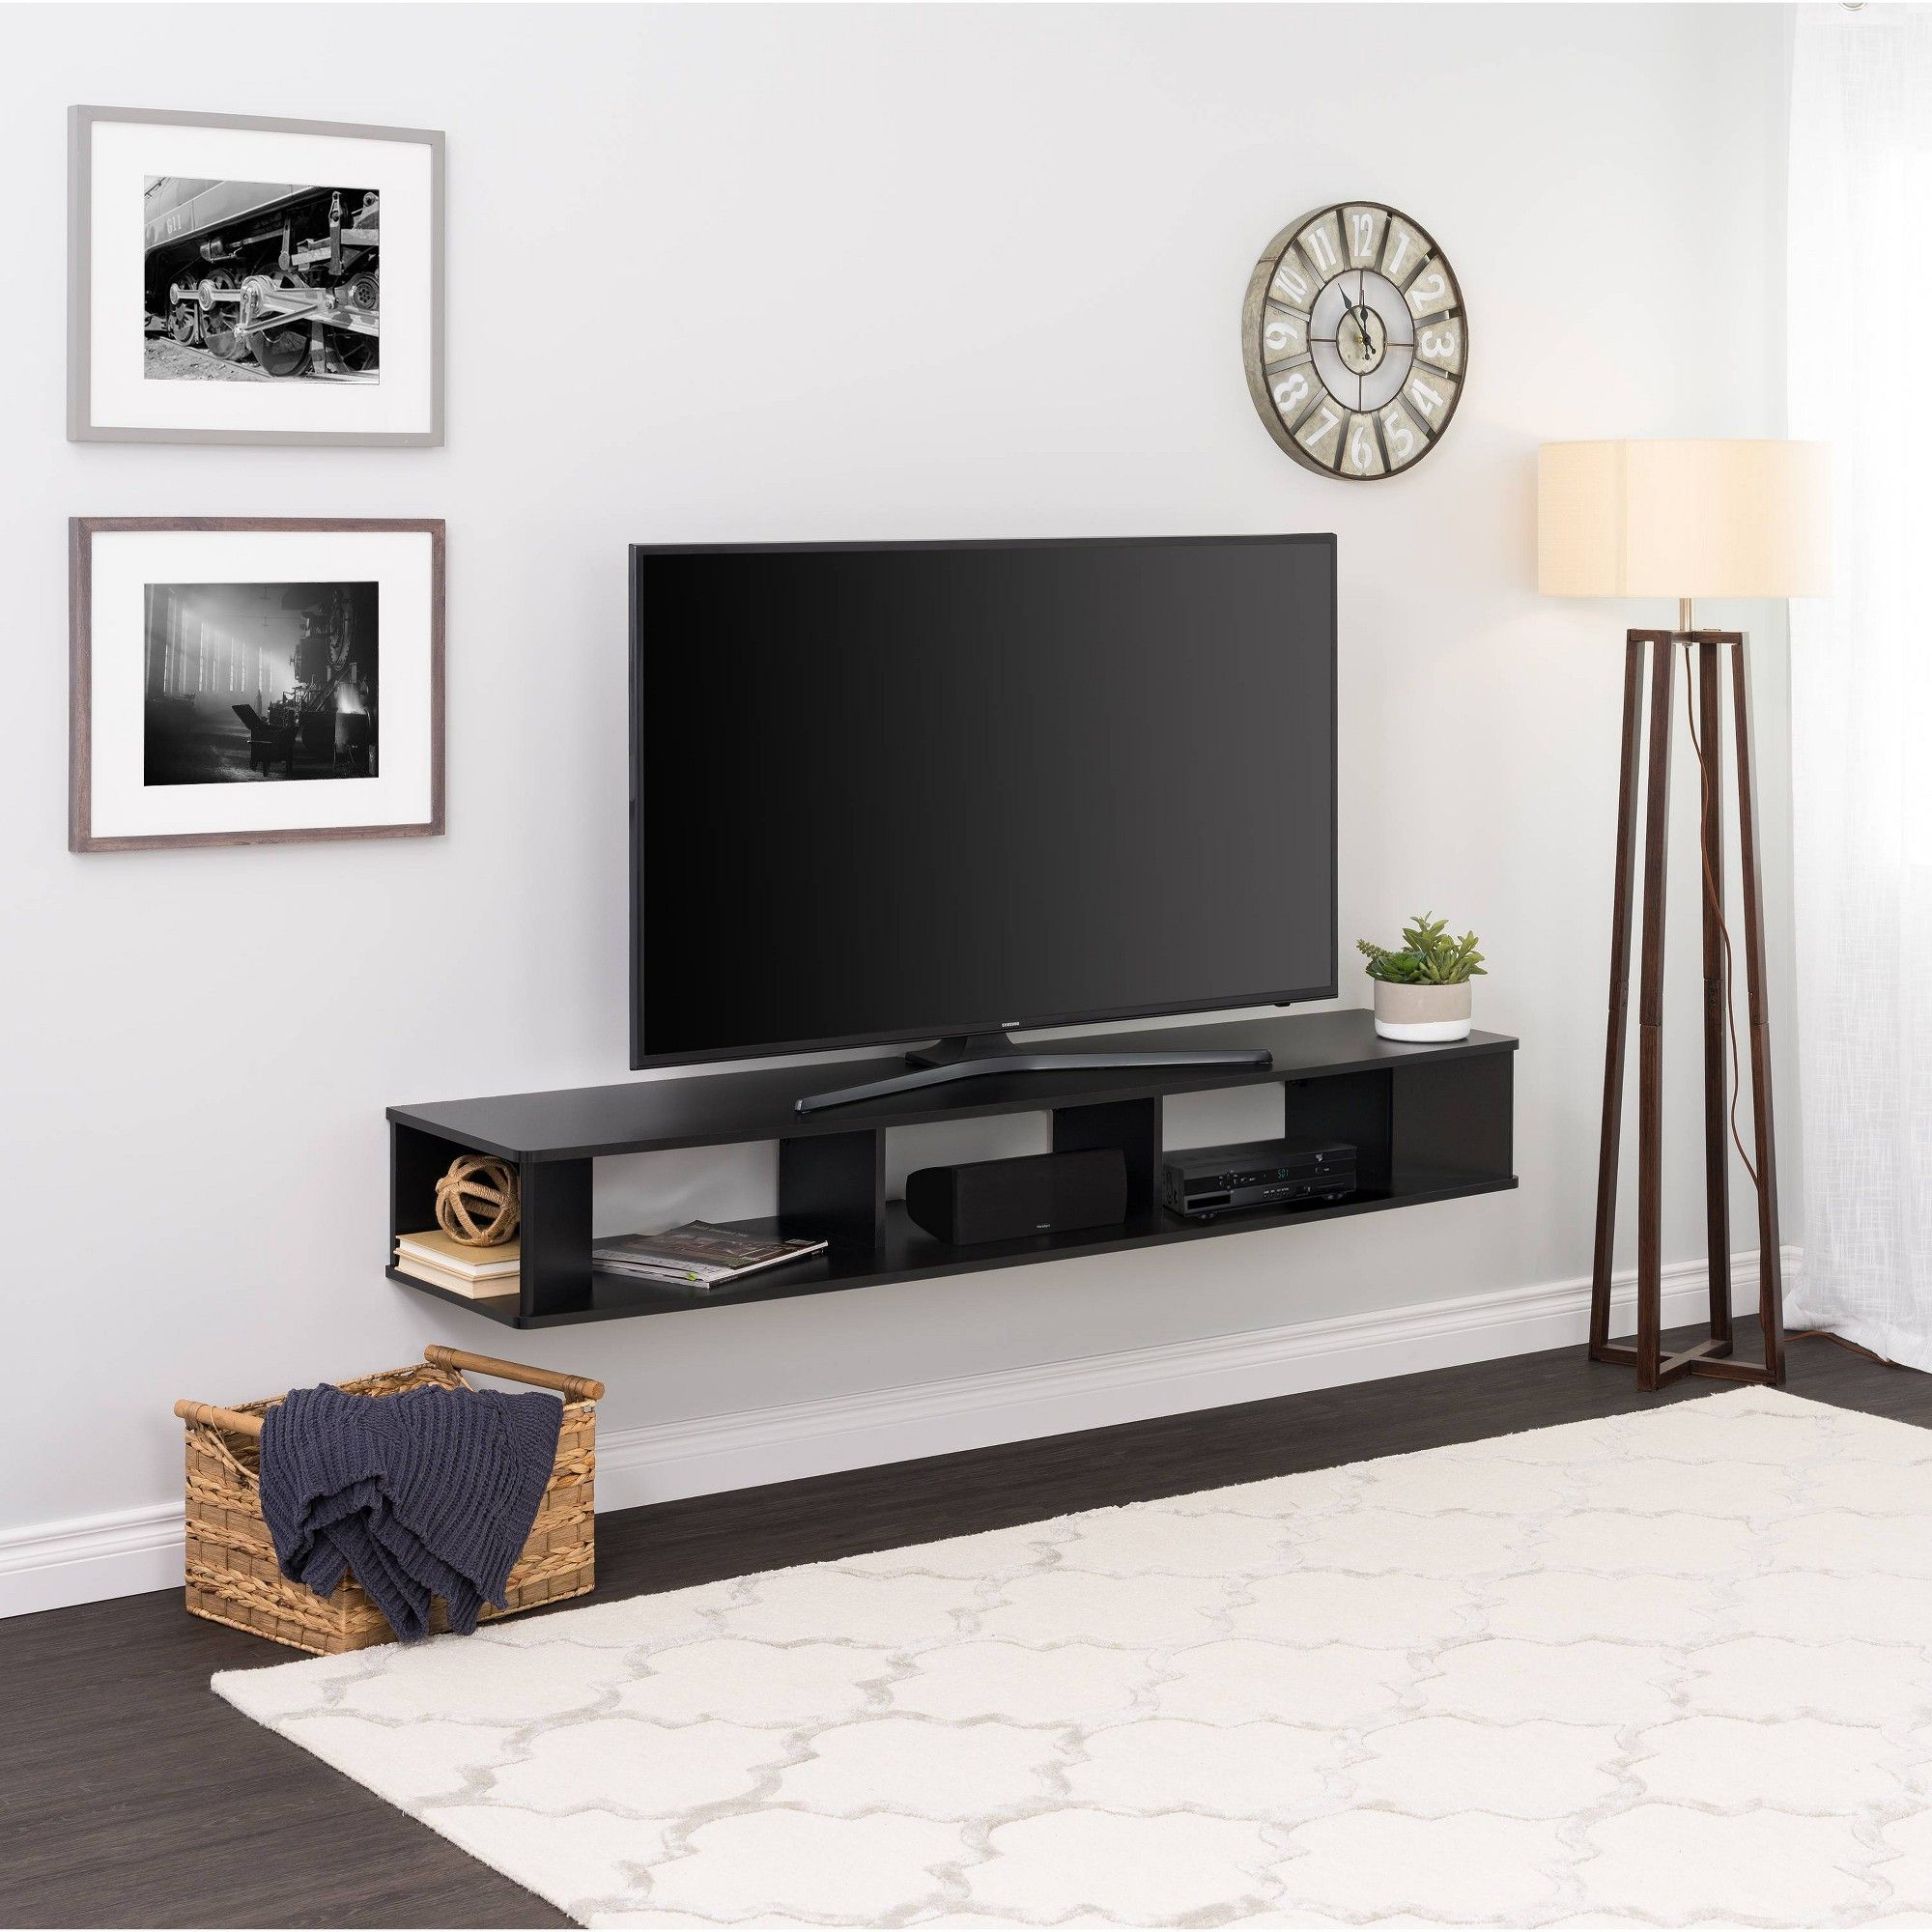 70 Wall Mounted Tv Stand Black Prepac Living Room Tv Tv Rack Design Wall Mount Tv Stand